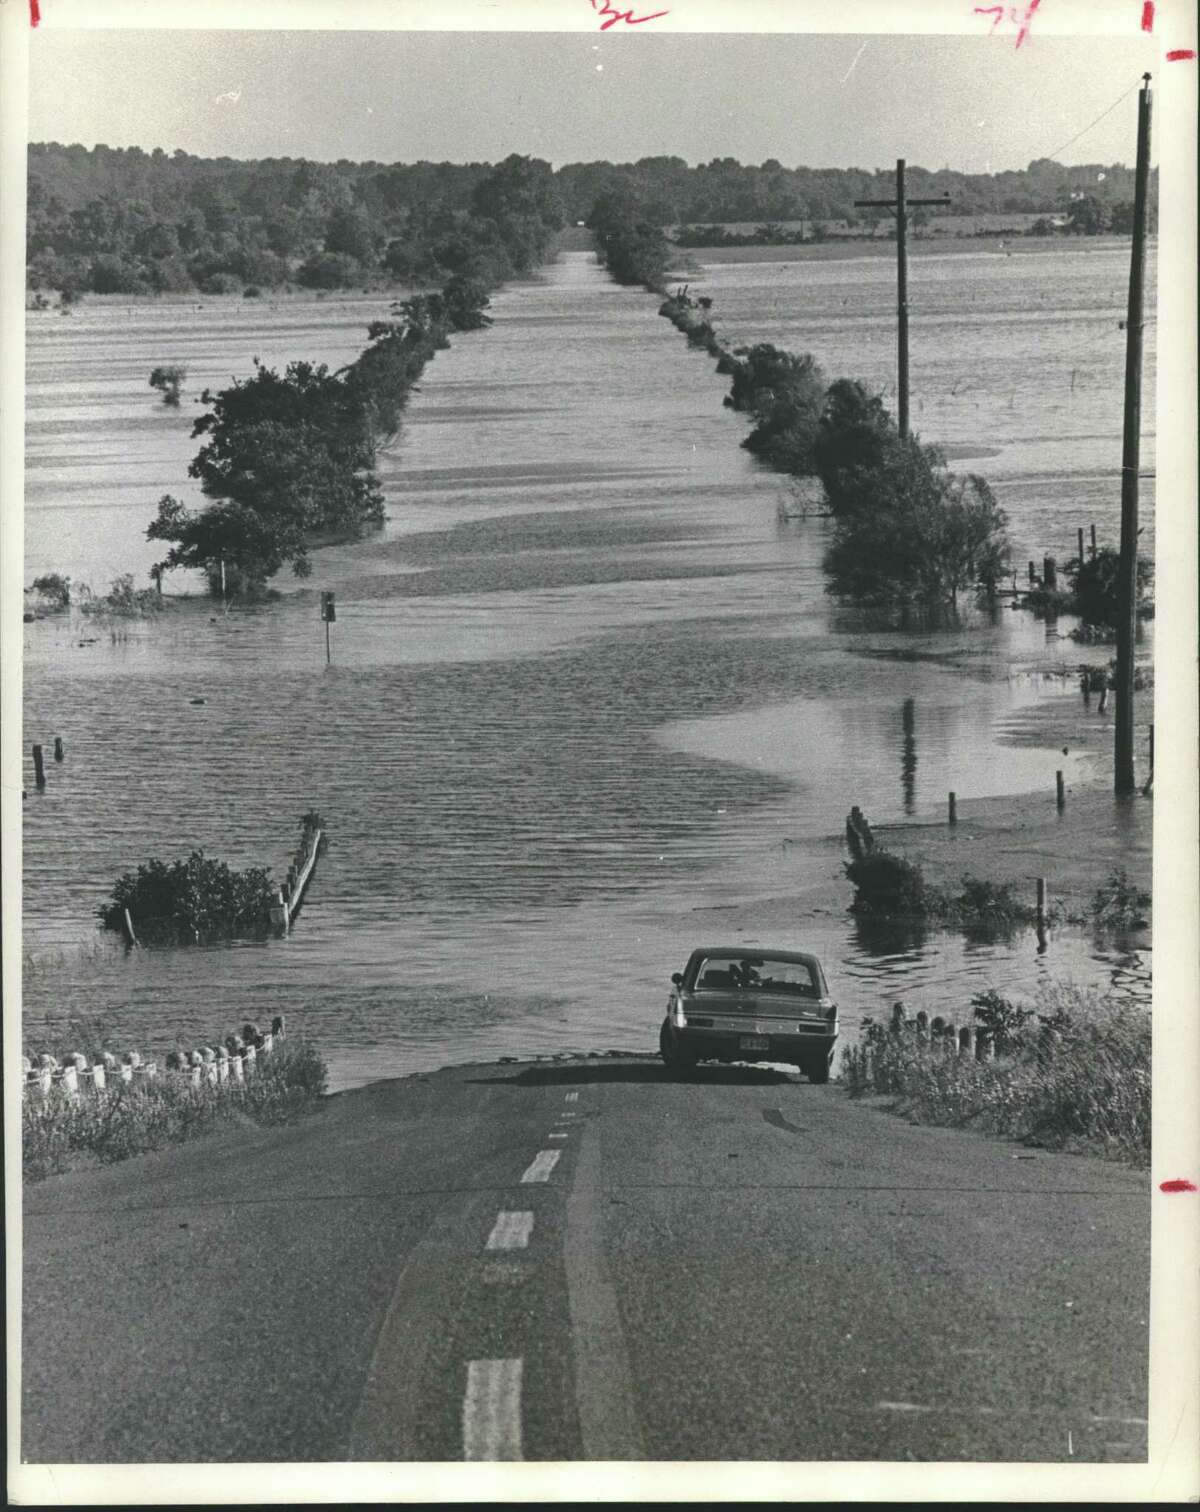 """Water from recent heavy rains has left at least two roads in the Addick's Reservoir area flooded and impassible. Pictured is a stretch of Eldridge Road north of the Katy Freeway, an abandoned car now stands clear of the receding water. Patterson Road just south of Bear Creek park also remained under water. Floods - Houston, Texas. The car obviously """"drowned out"""" and the water receded leaving it high and dry. Car sits where flooding begins - Eldridge Road in Houston."""